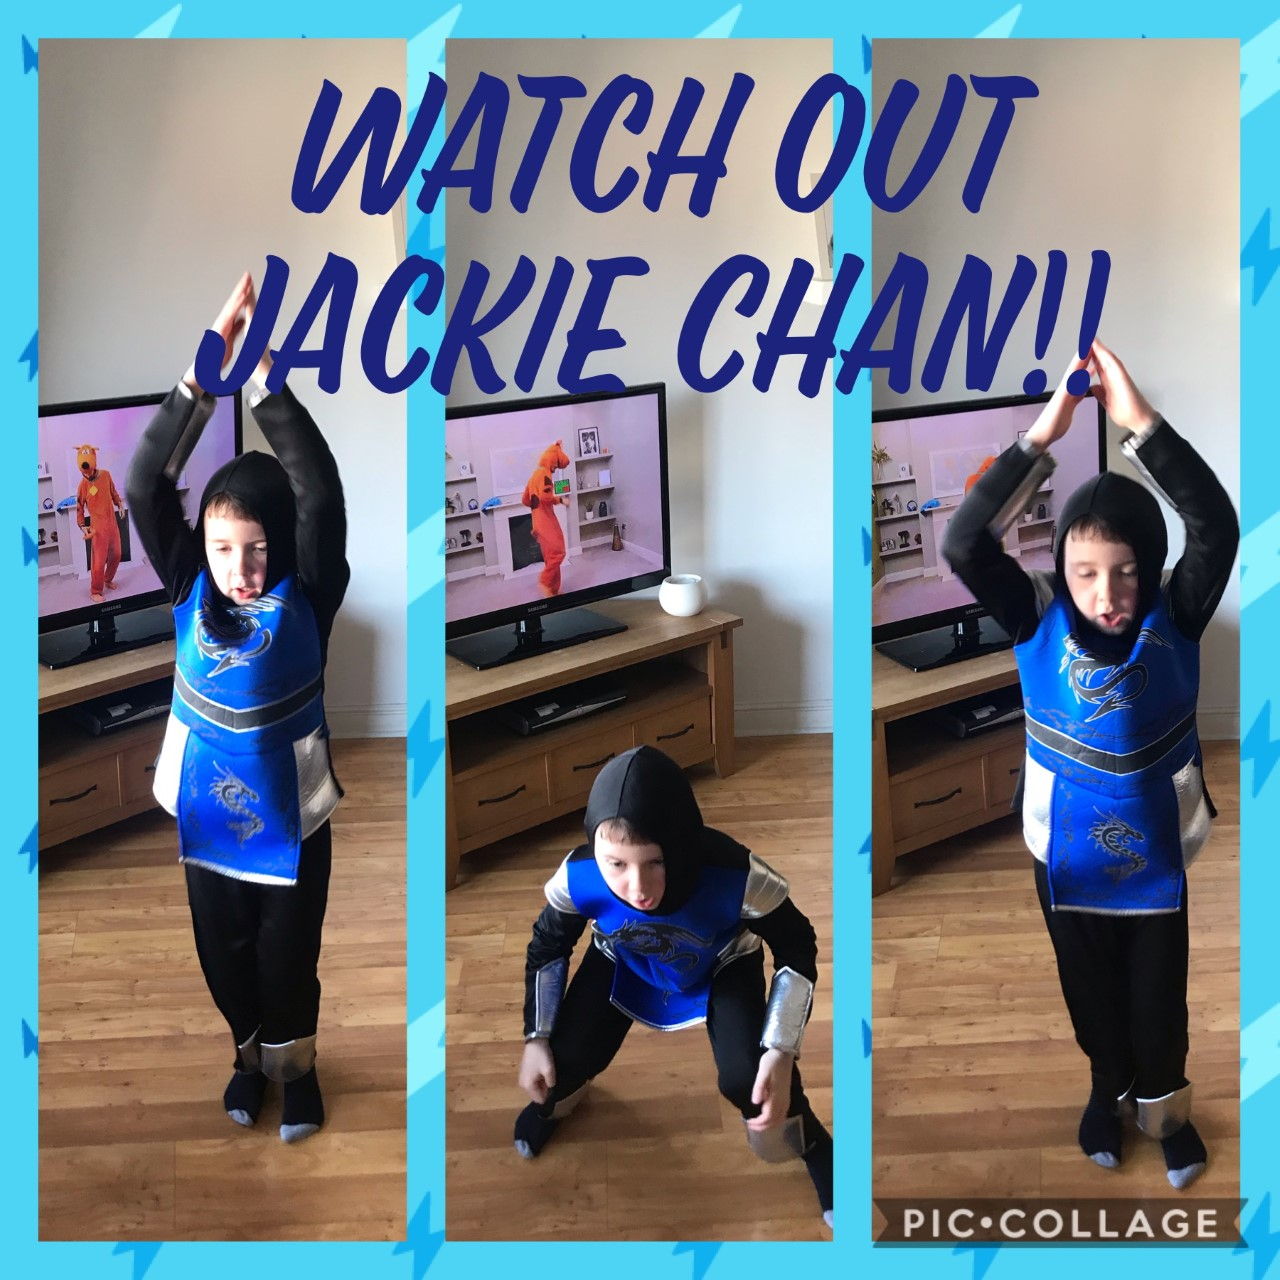 Watch-out-Jackie-Chan